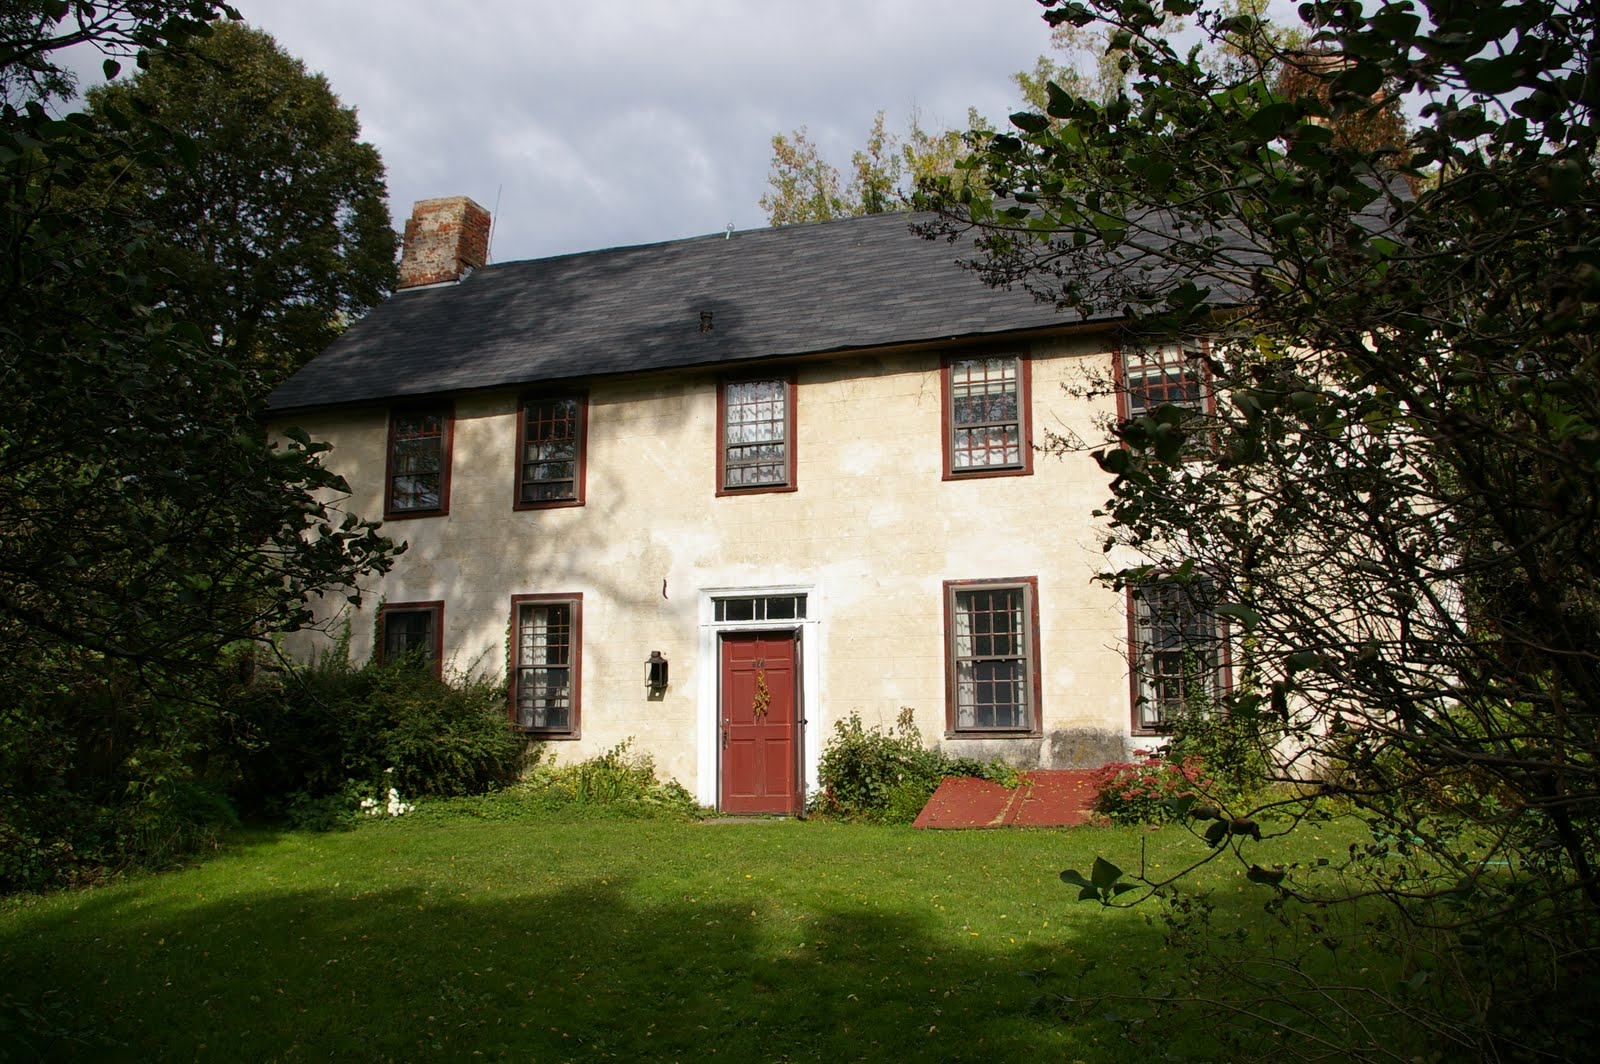 Peaslee Garrison House (1673)